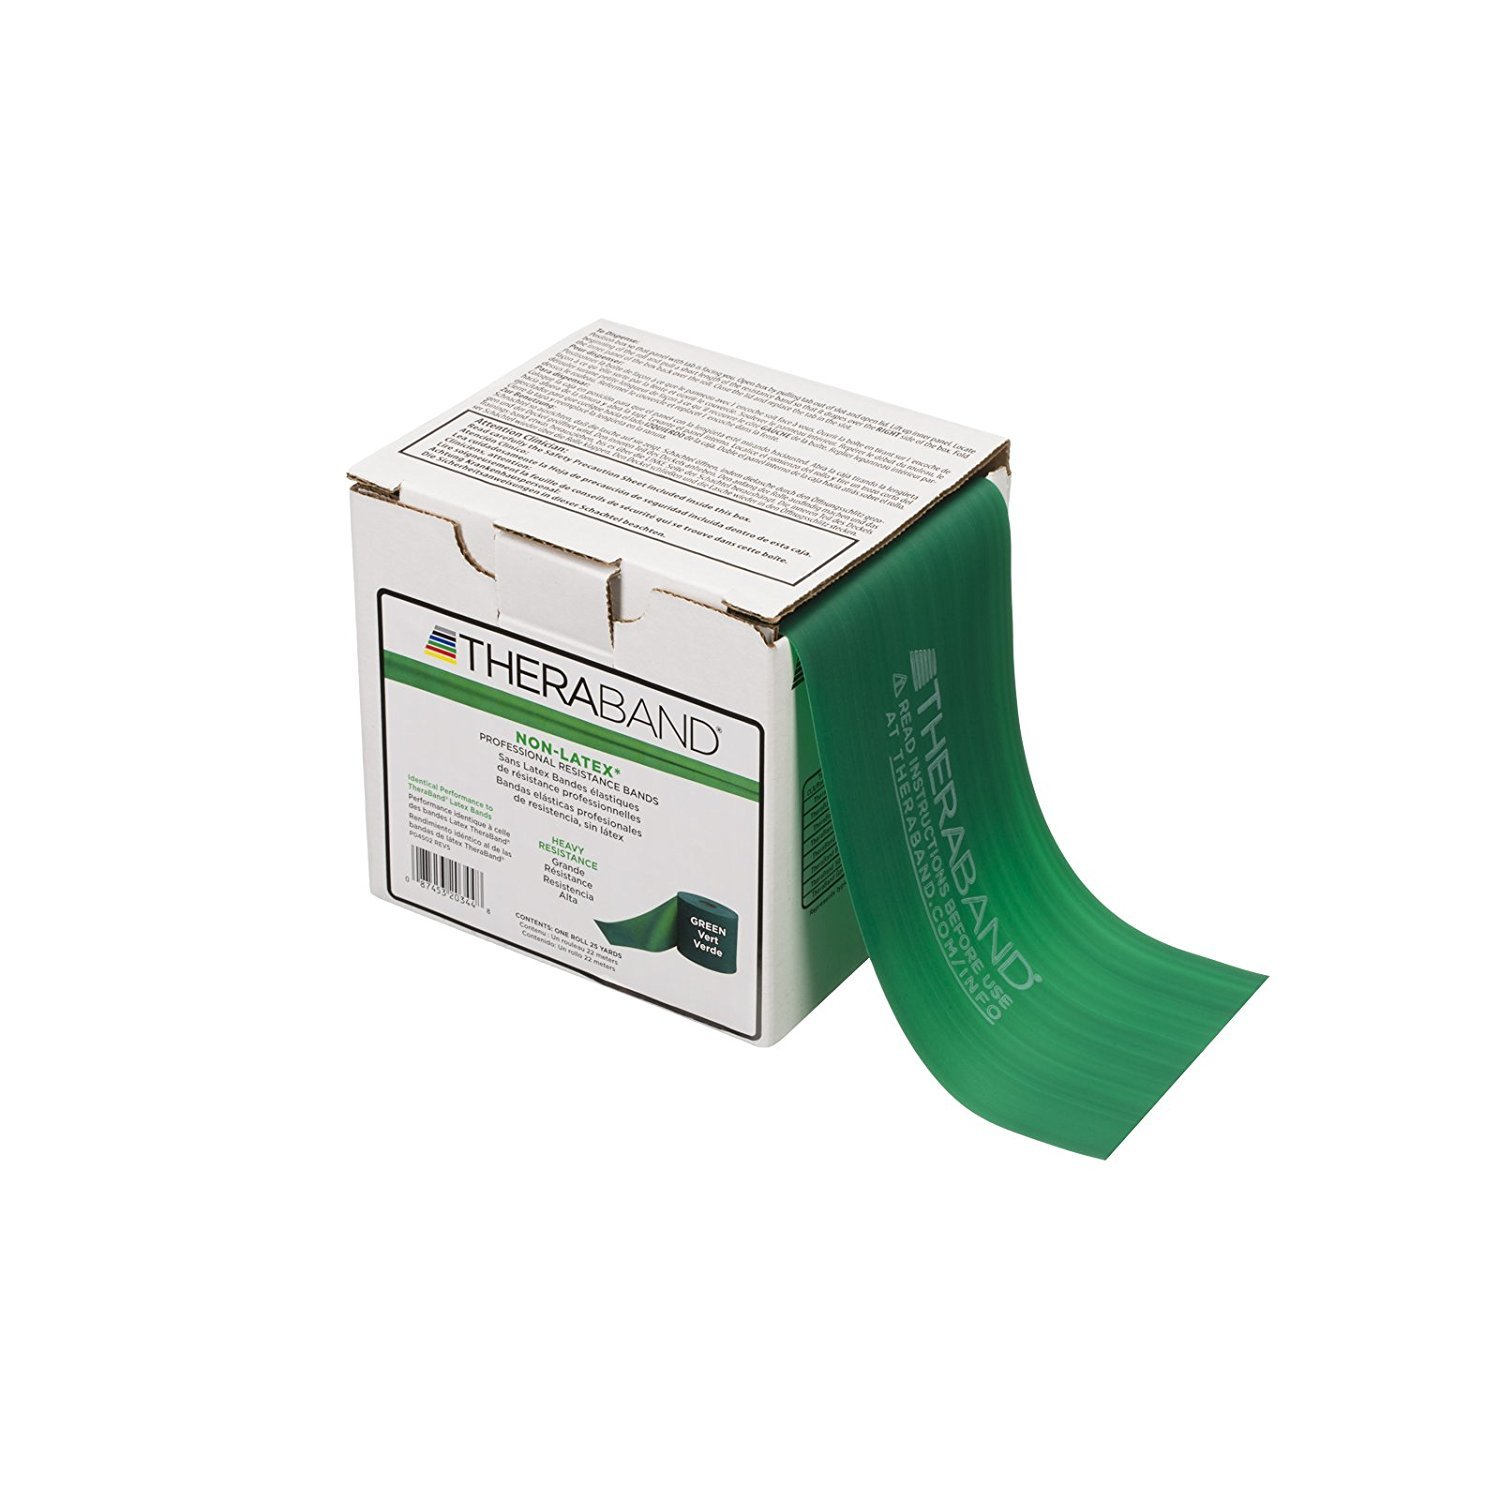 Hygienic/Theraband 11728 Professional Resistance Band, Green, Heavy, 50 yd. Length, Latex Free (Pack of 4)